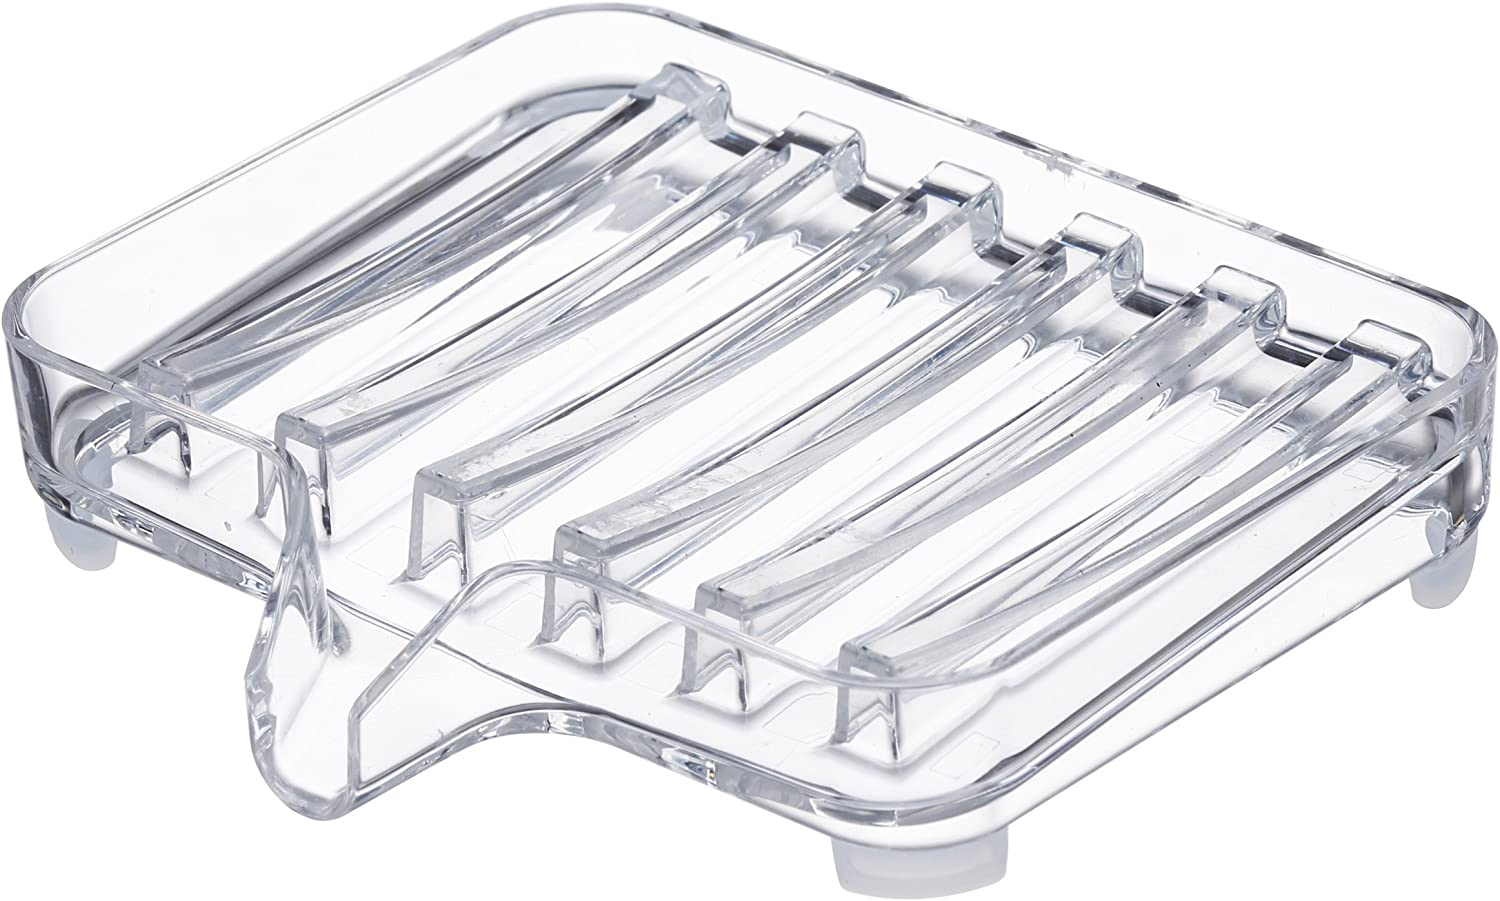 YAMAZAKI home Self-Draining Soap Tray - Sink Counter Holder Dish Space saving, One Size, Clear